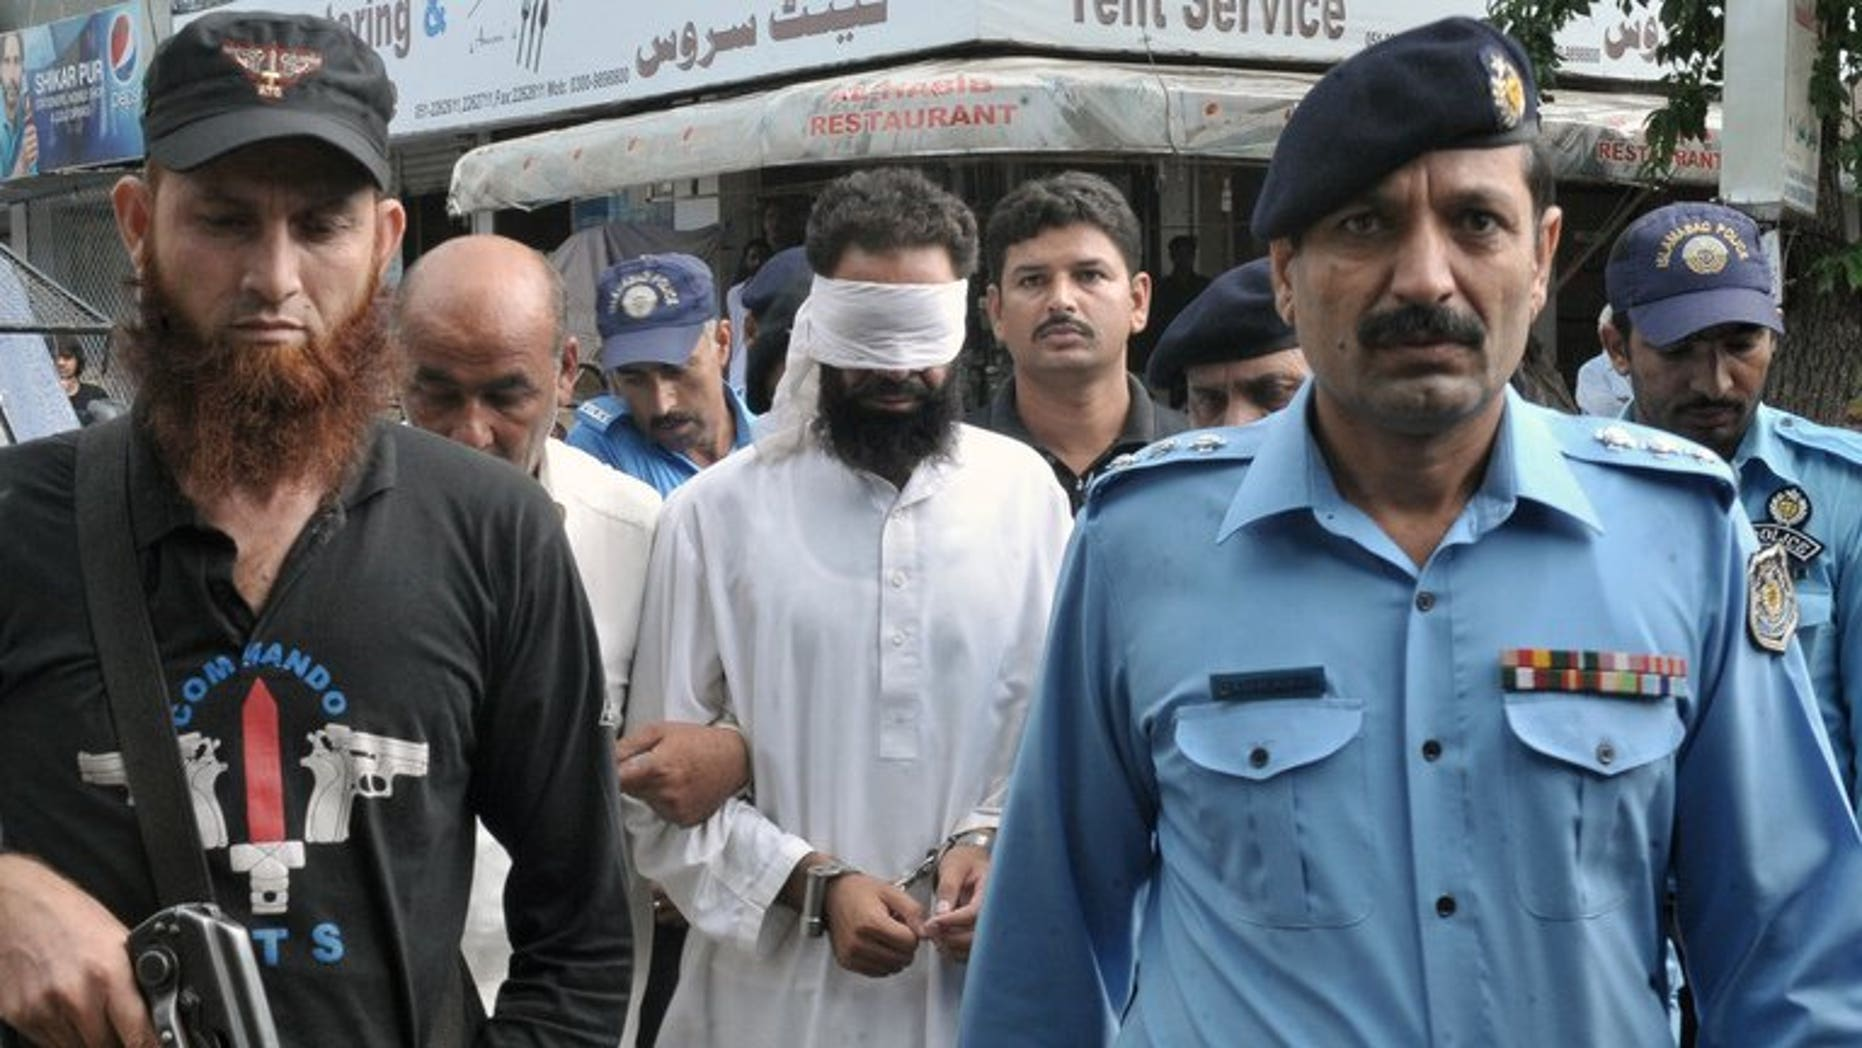 Pakistani policemen escort Islamic cleric Hafiz Mohammed Khalid Chishti (C) upon his arrival at a court in Islamabad on September 2, 2012. A Pakistan court on Saturday acquitted a Khalid Chishti, who accused a Christian girl of blasphemy before he himself was arrested on similar charges, a lawyer said.